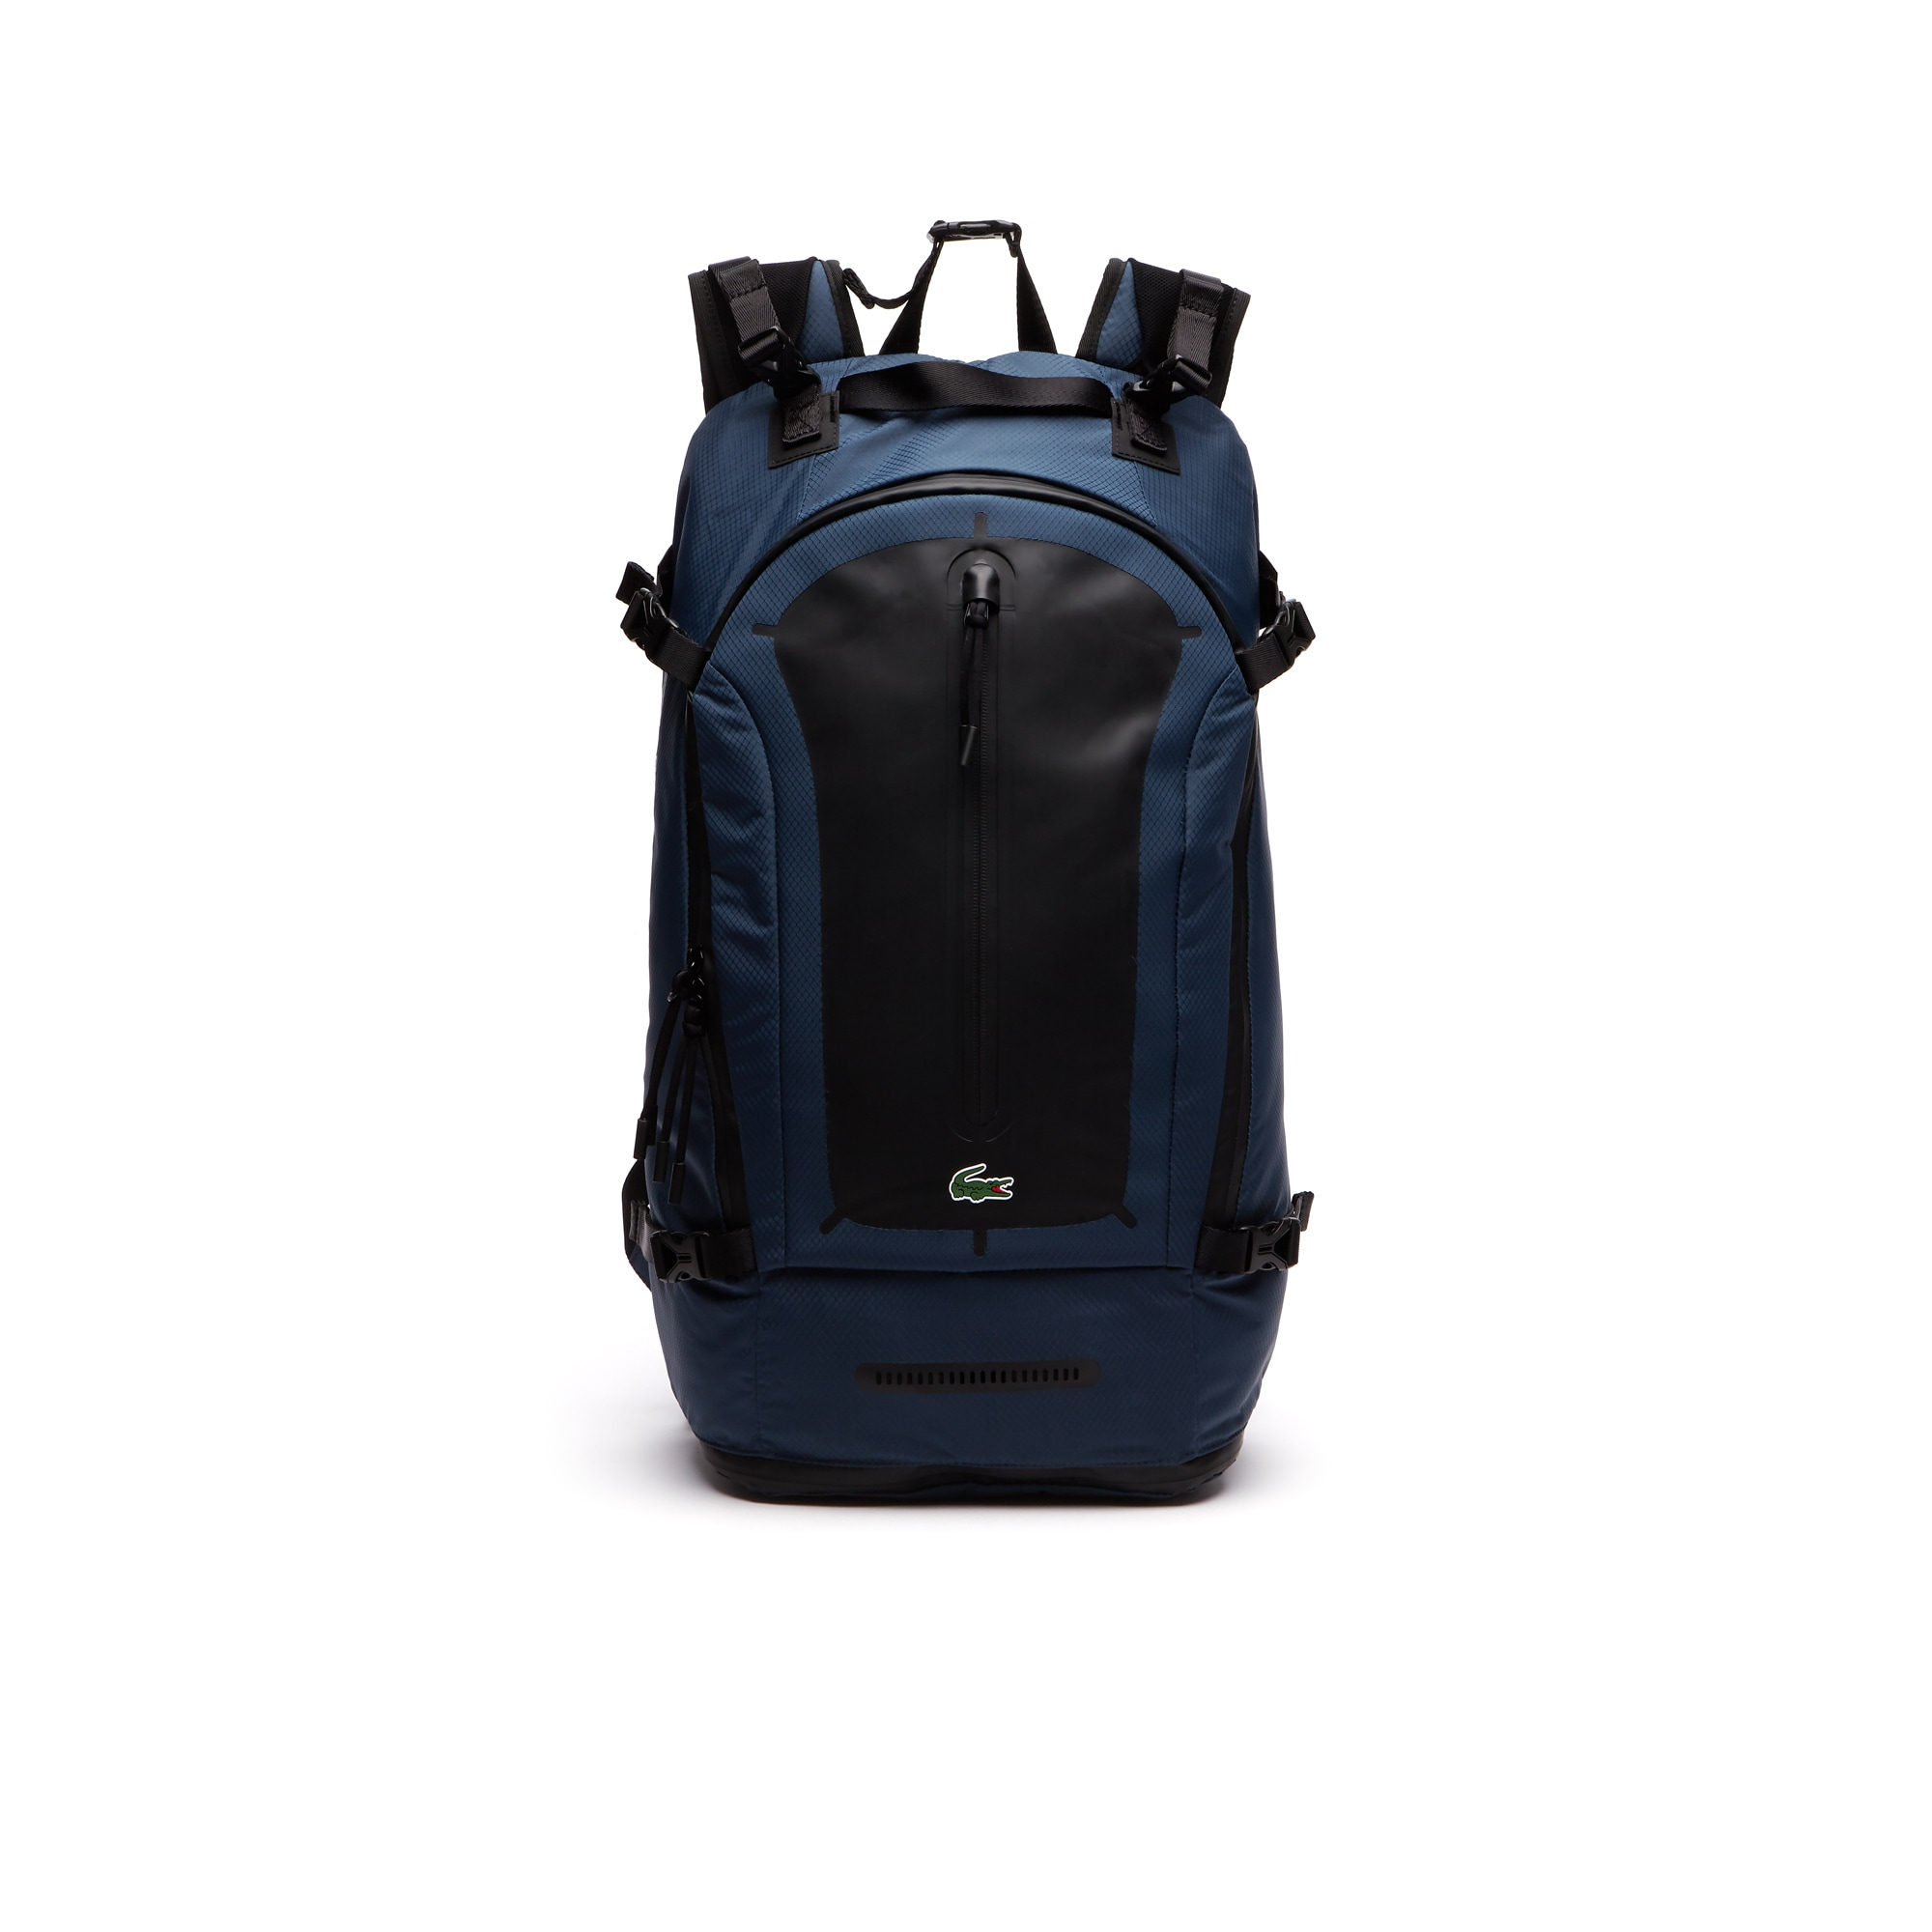 Herren-Rucksack MATCH POINT aus Nylon LACOSTE SPORT